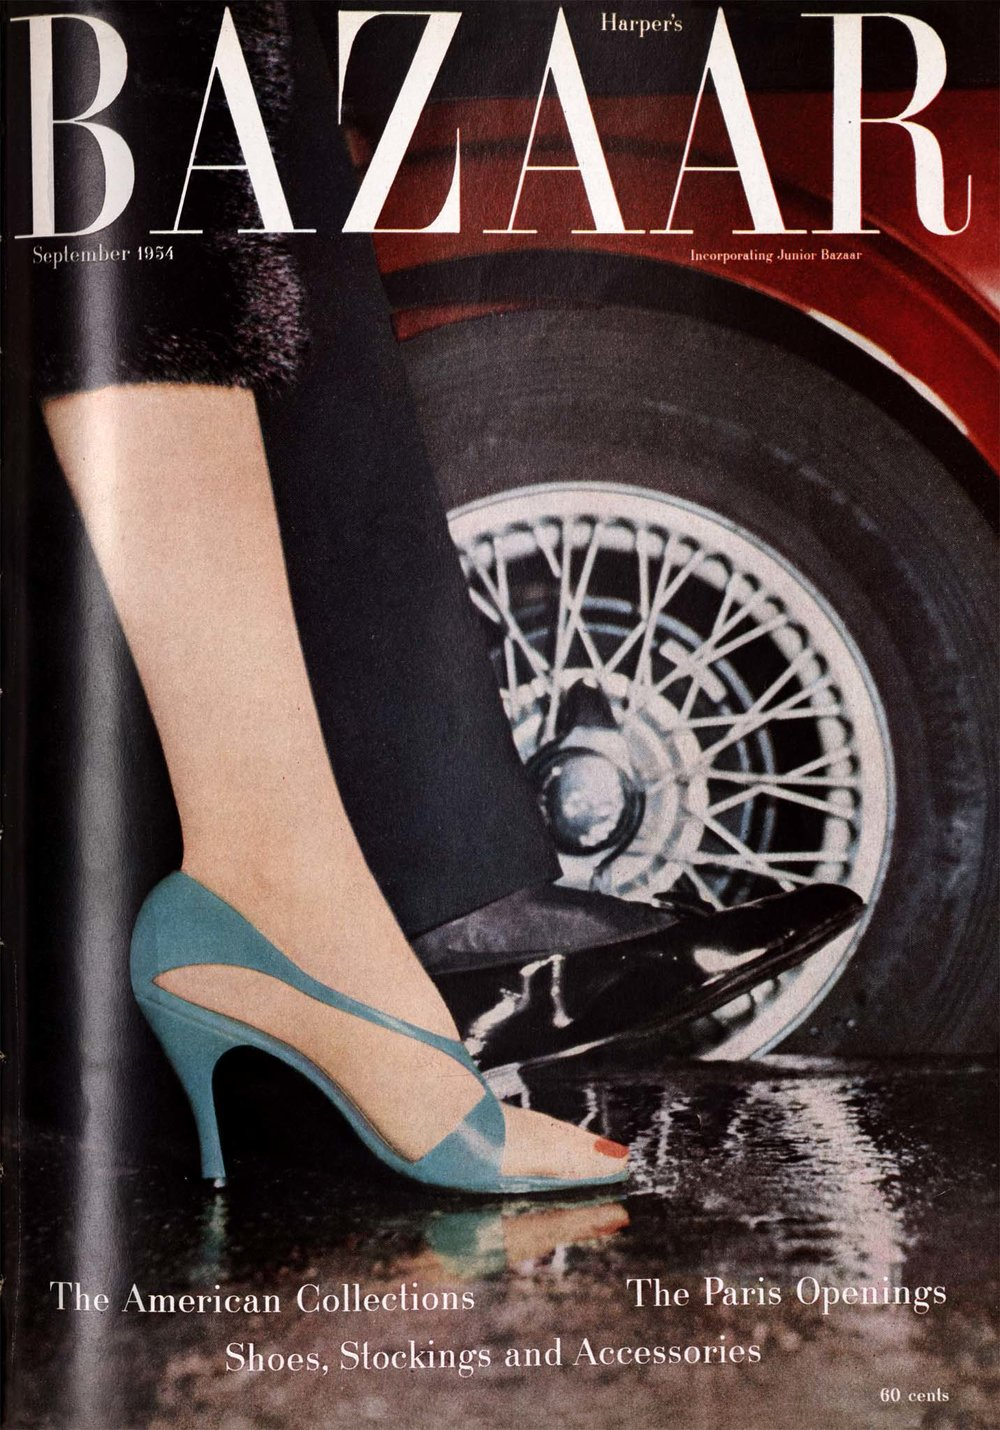 Harper's Bazaar, September 1954